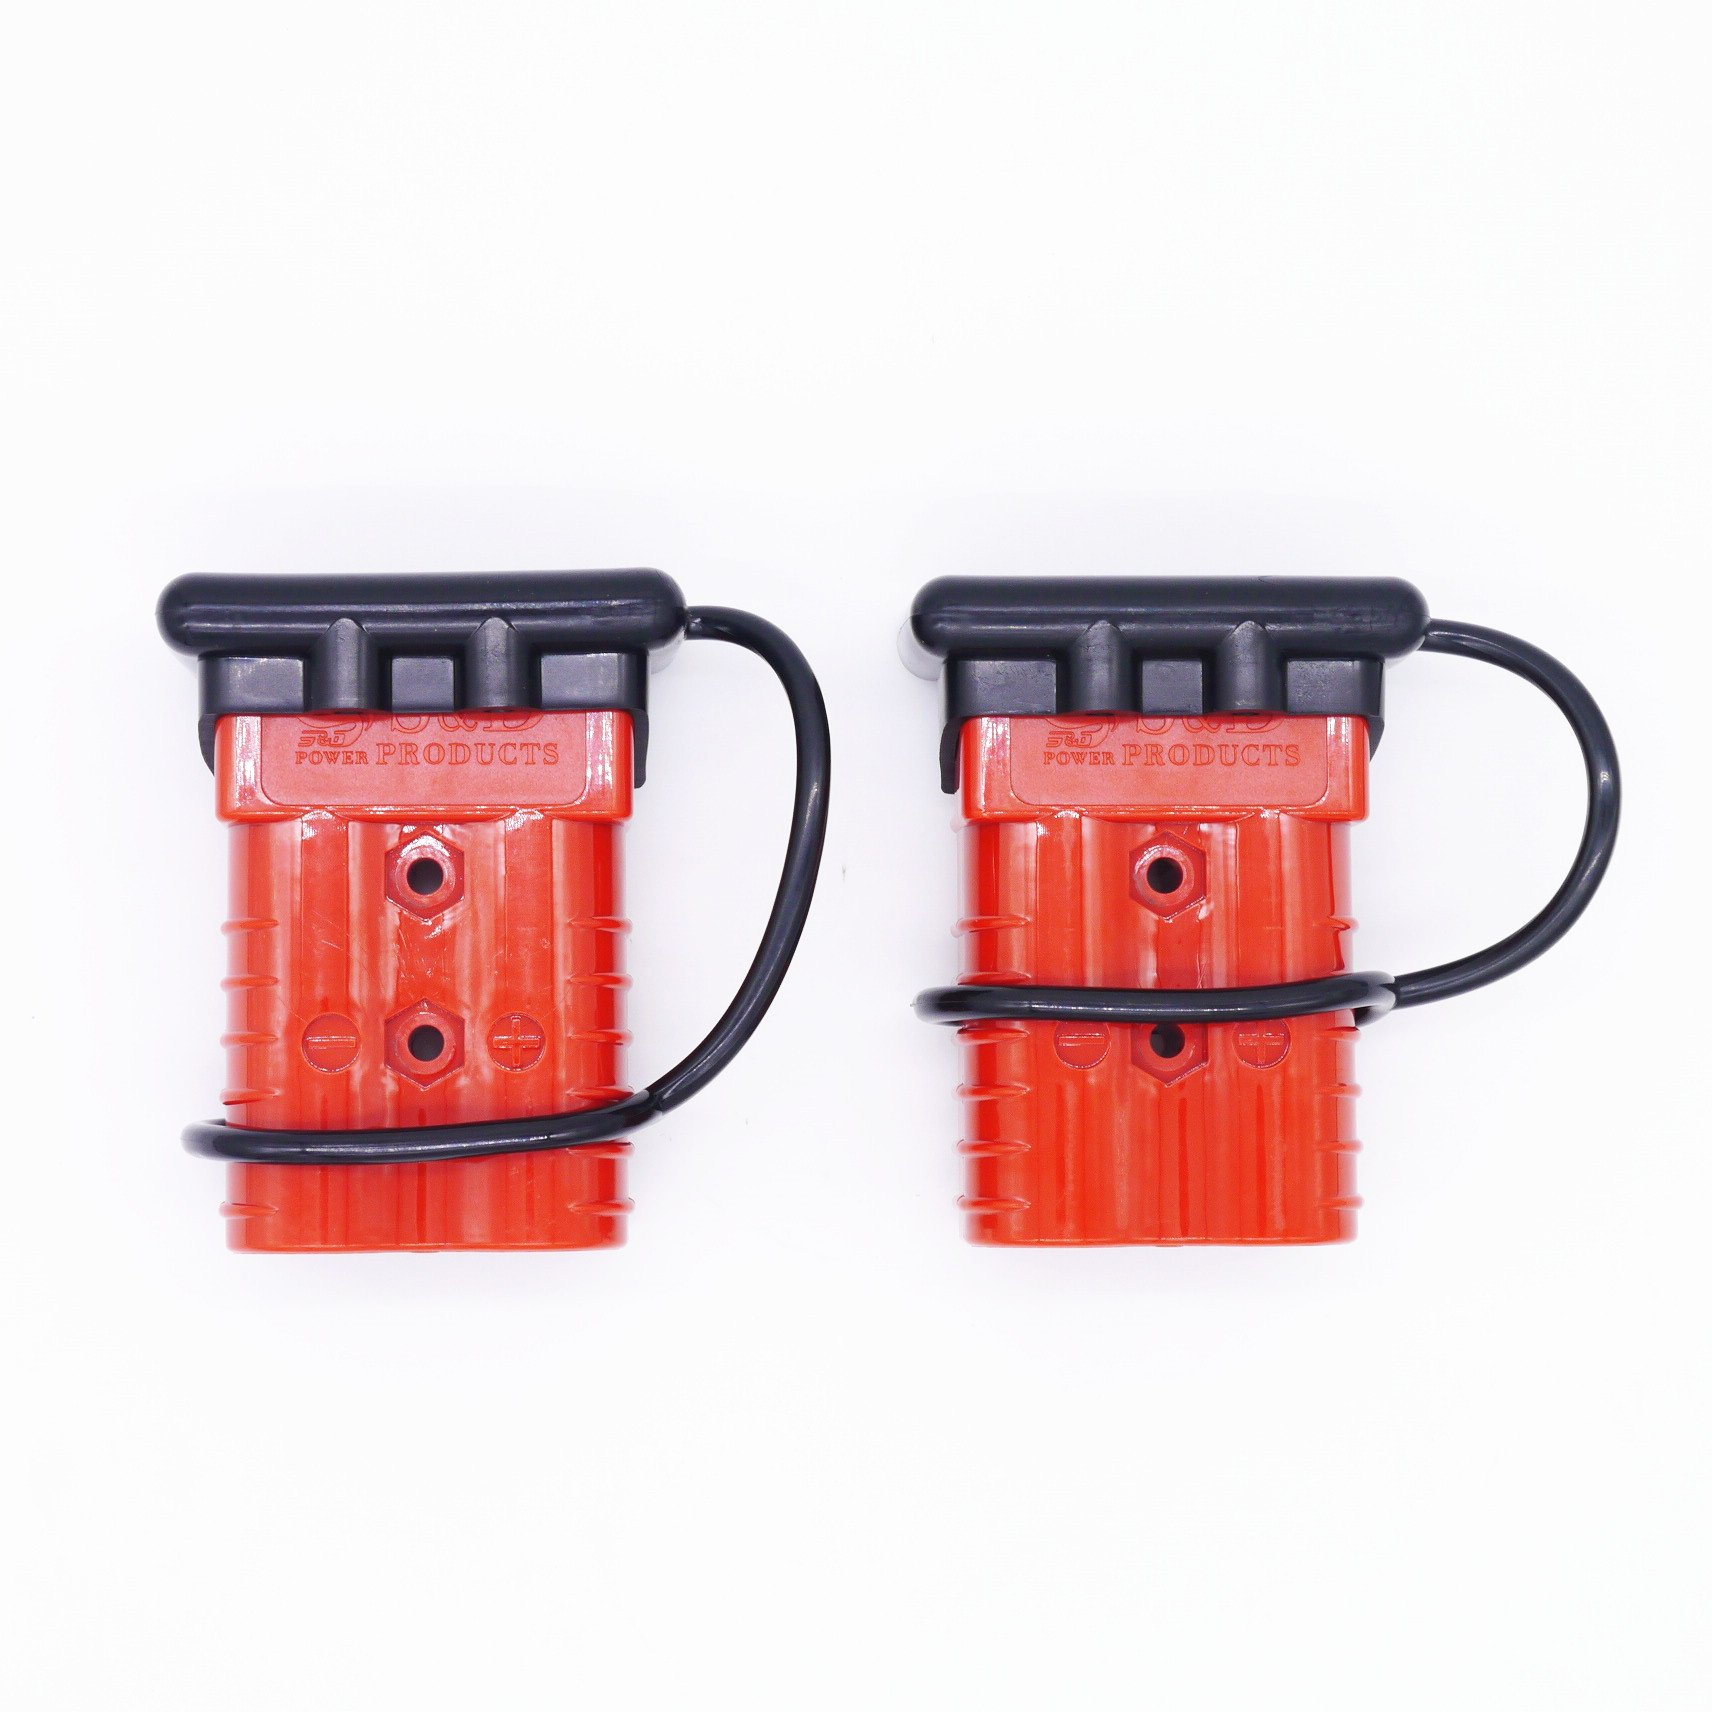 ANTS PART Universal 2-4 AWG 350A Battery Connect Quick Connector Plug for 12V Winch Trailer Driver Electrical Devices by ANTS PART